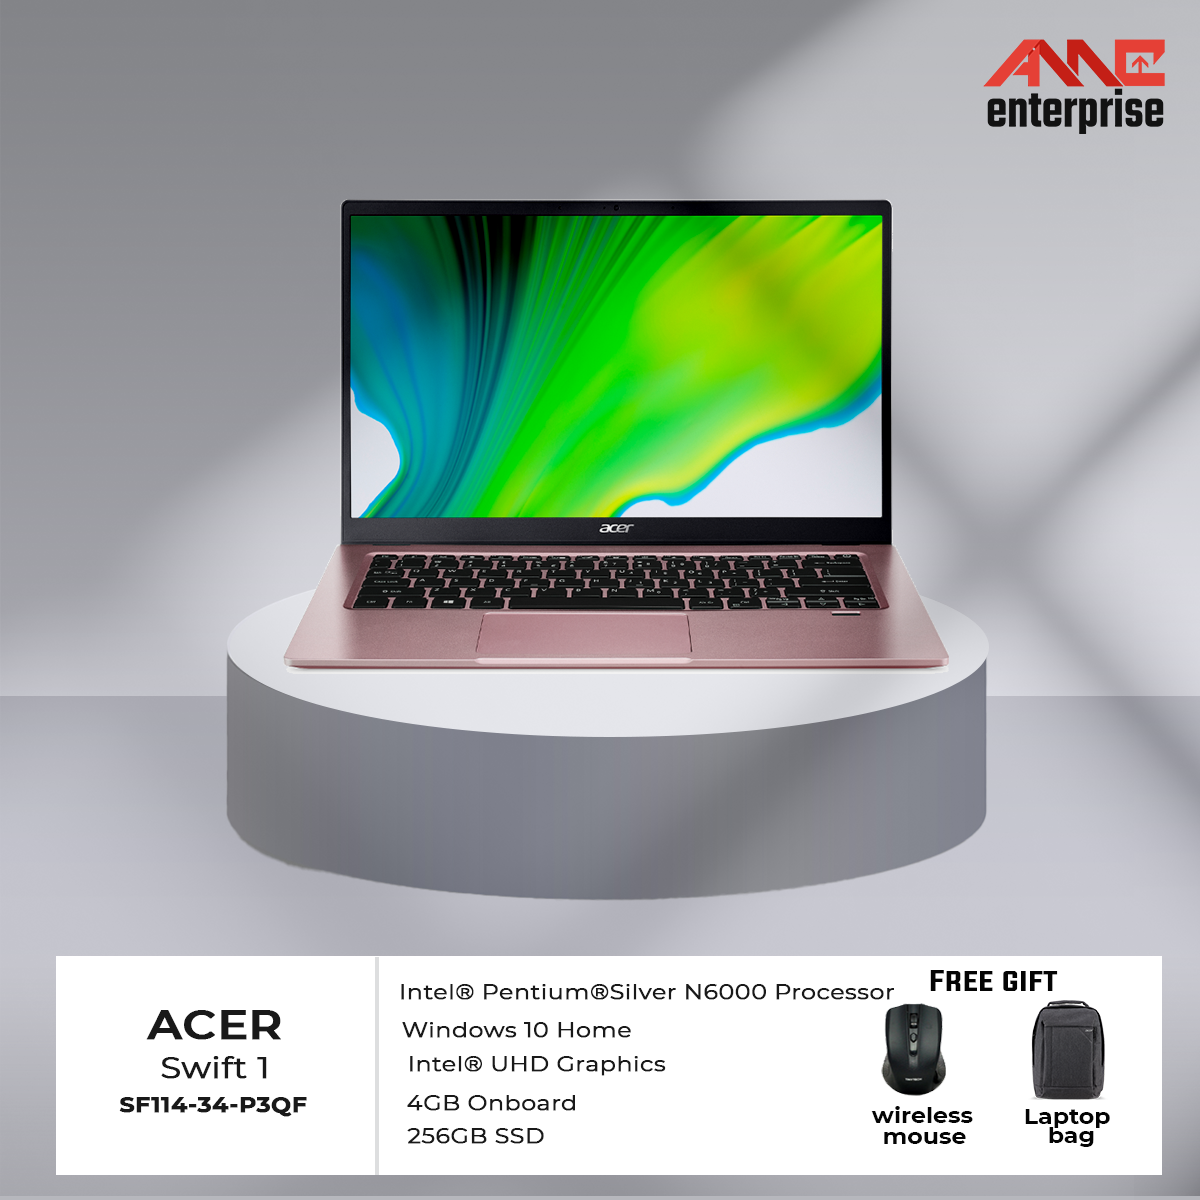 Acer Laptop Swift 1 SF114-34-P3QF.png